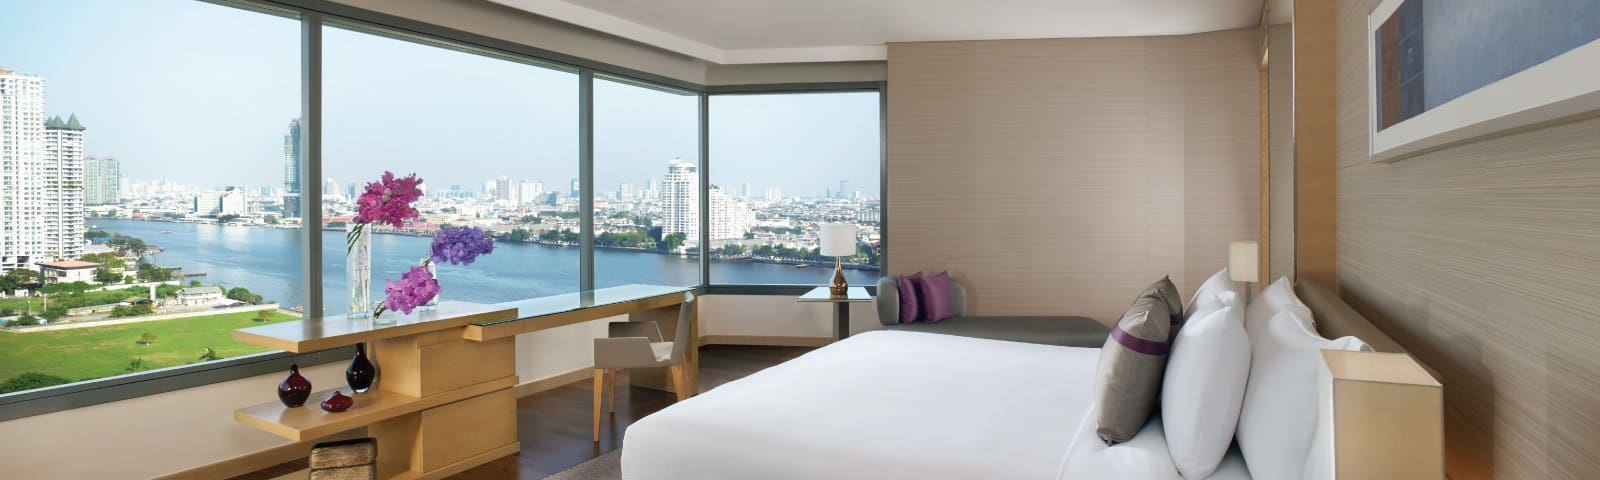 Room with city and river view at AVANI Riverside